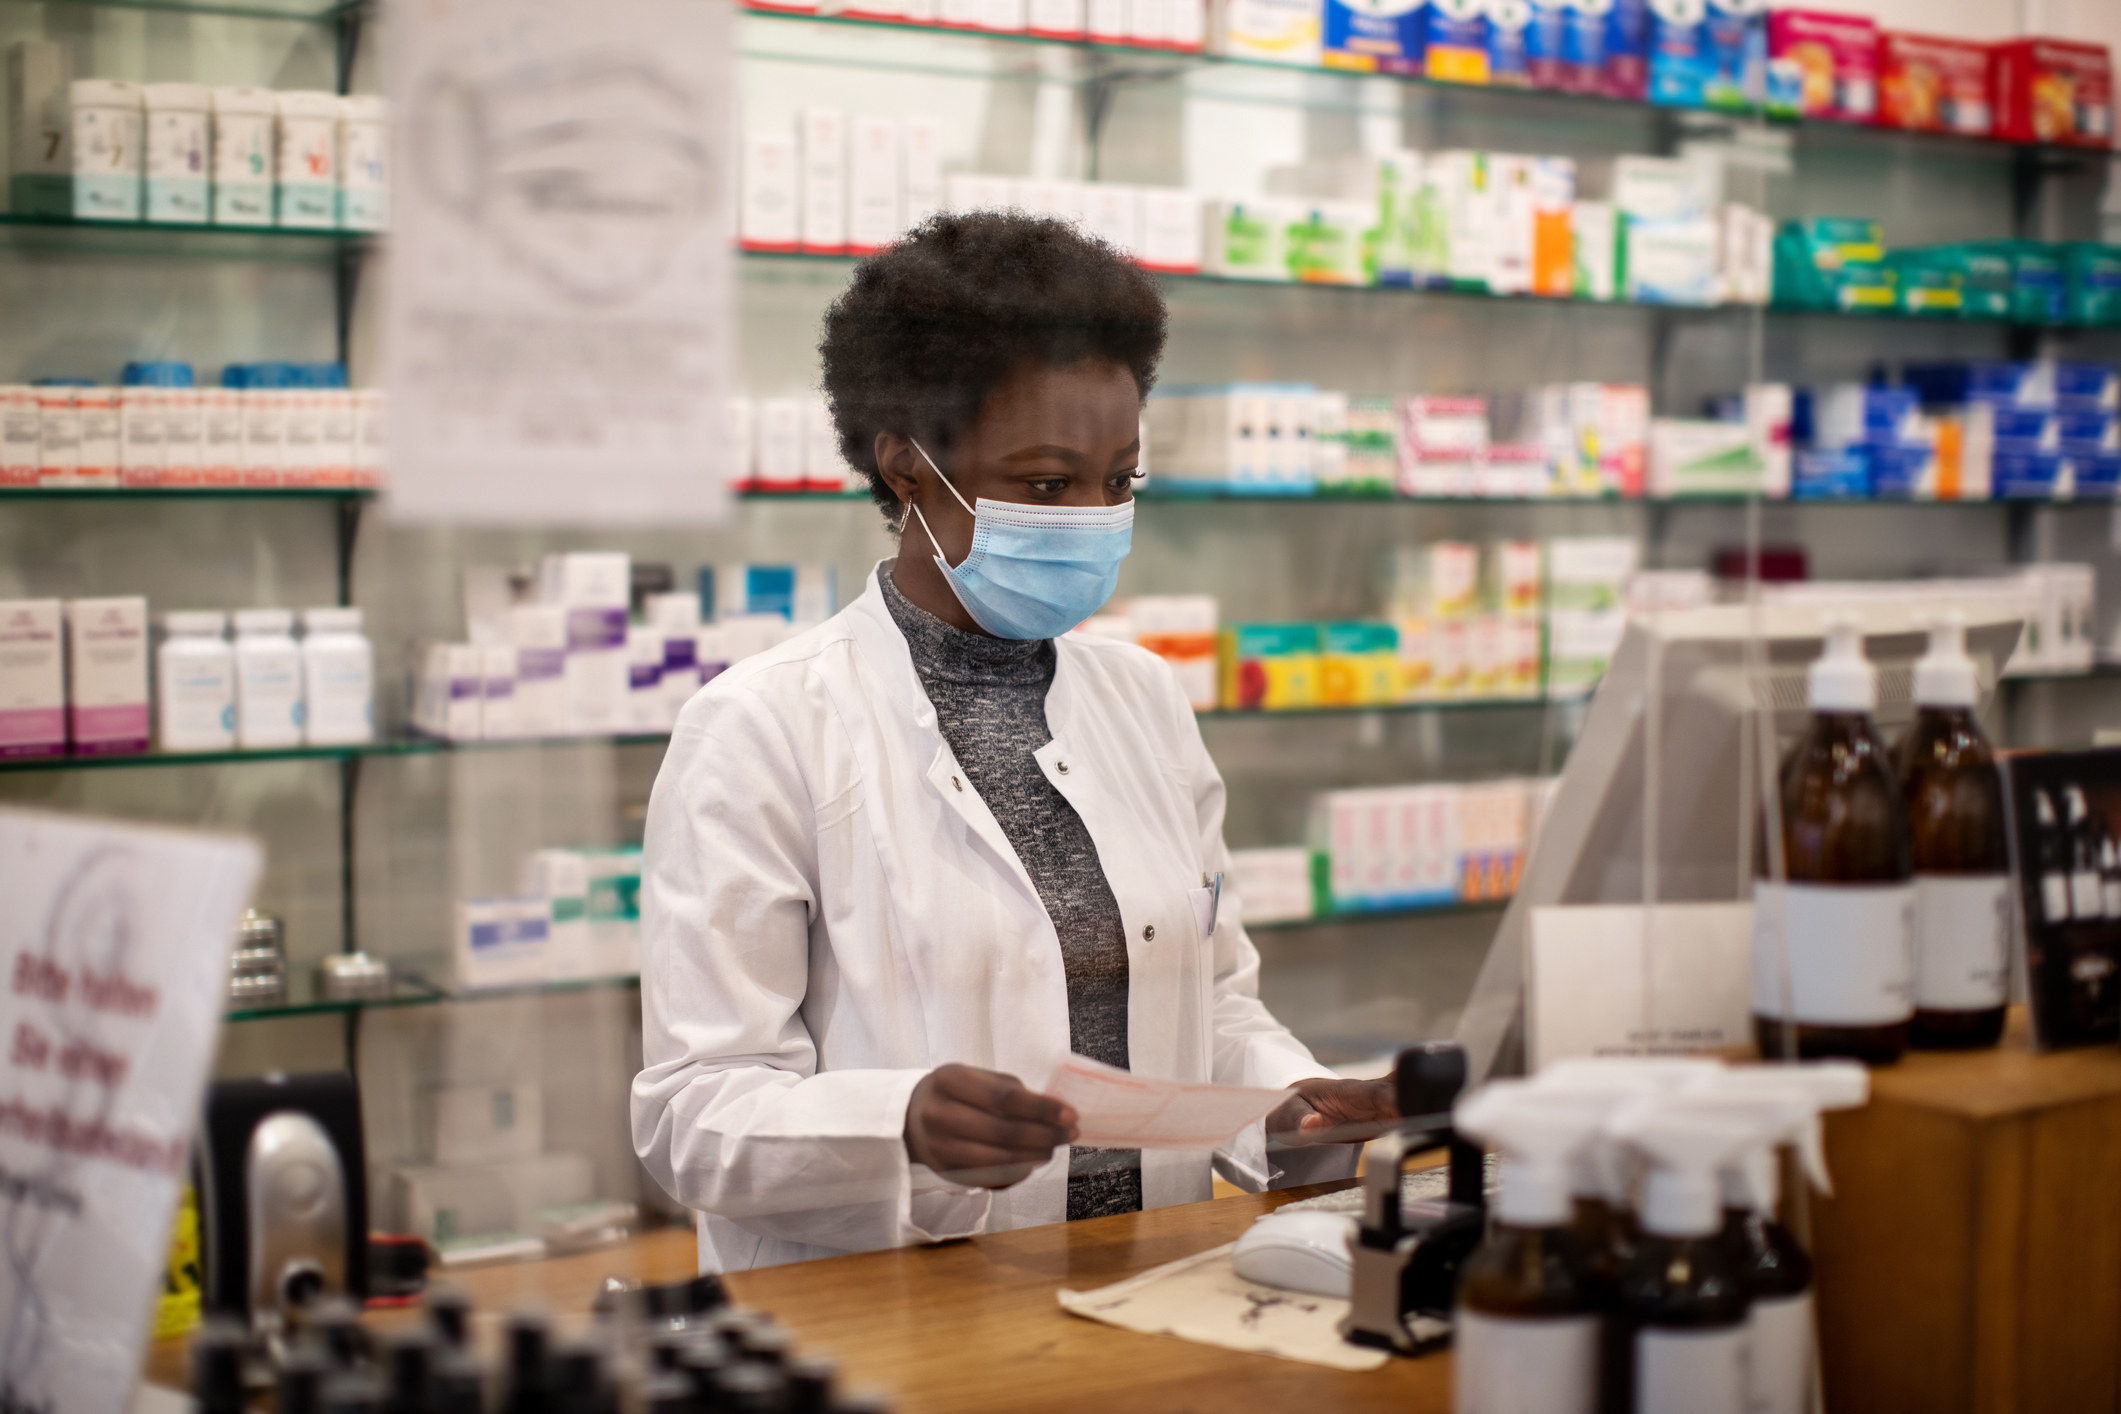 Pharmacist working during COVID - wearing a mask while working behind a plastic protected shield